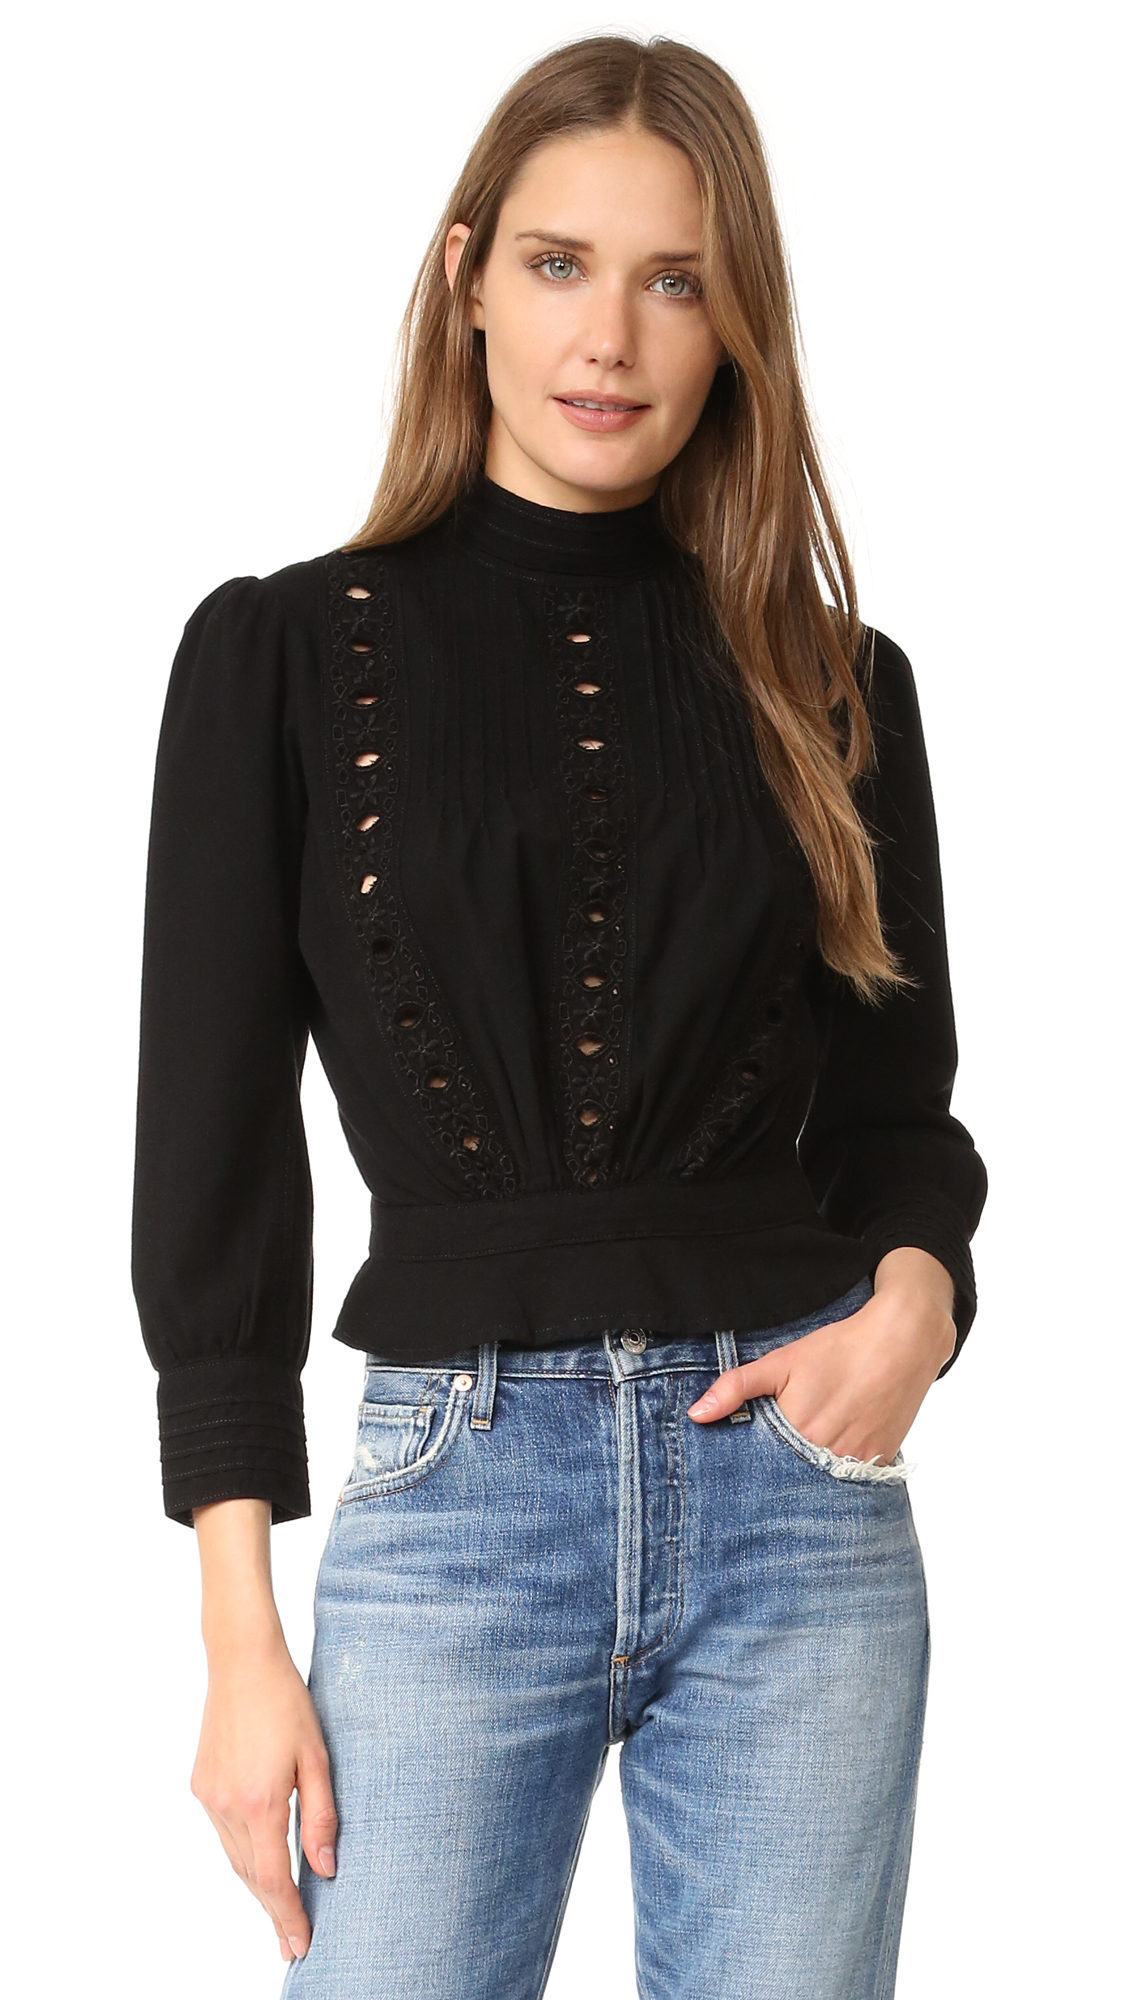 Citizens Of Humanity Josie Blouse - Black at Shopbop